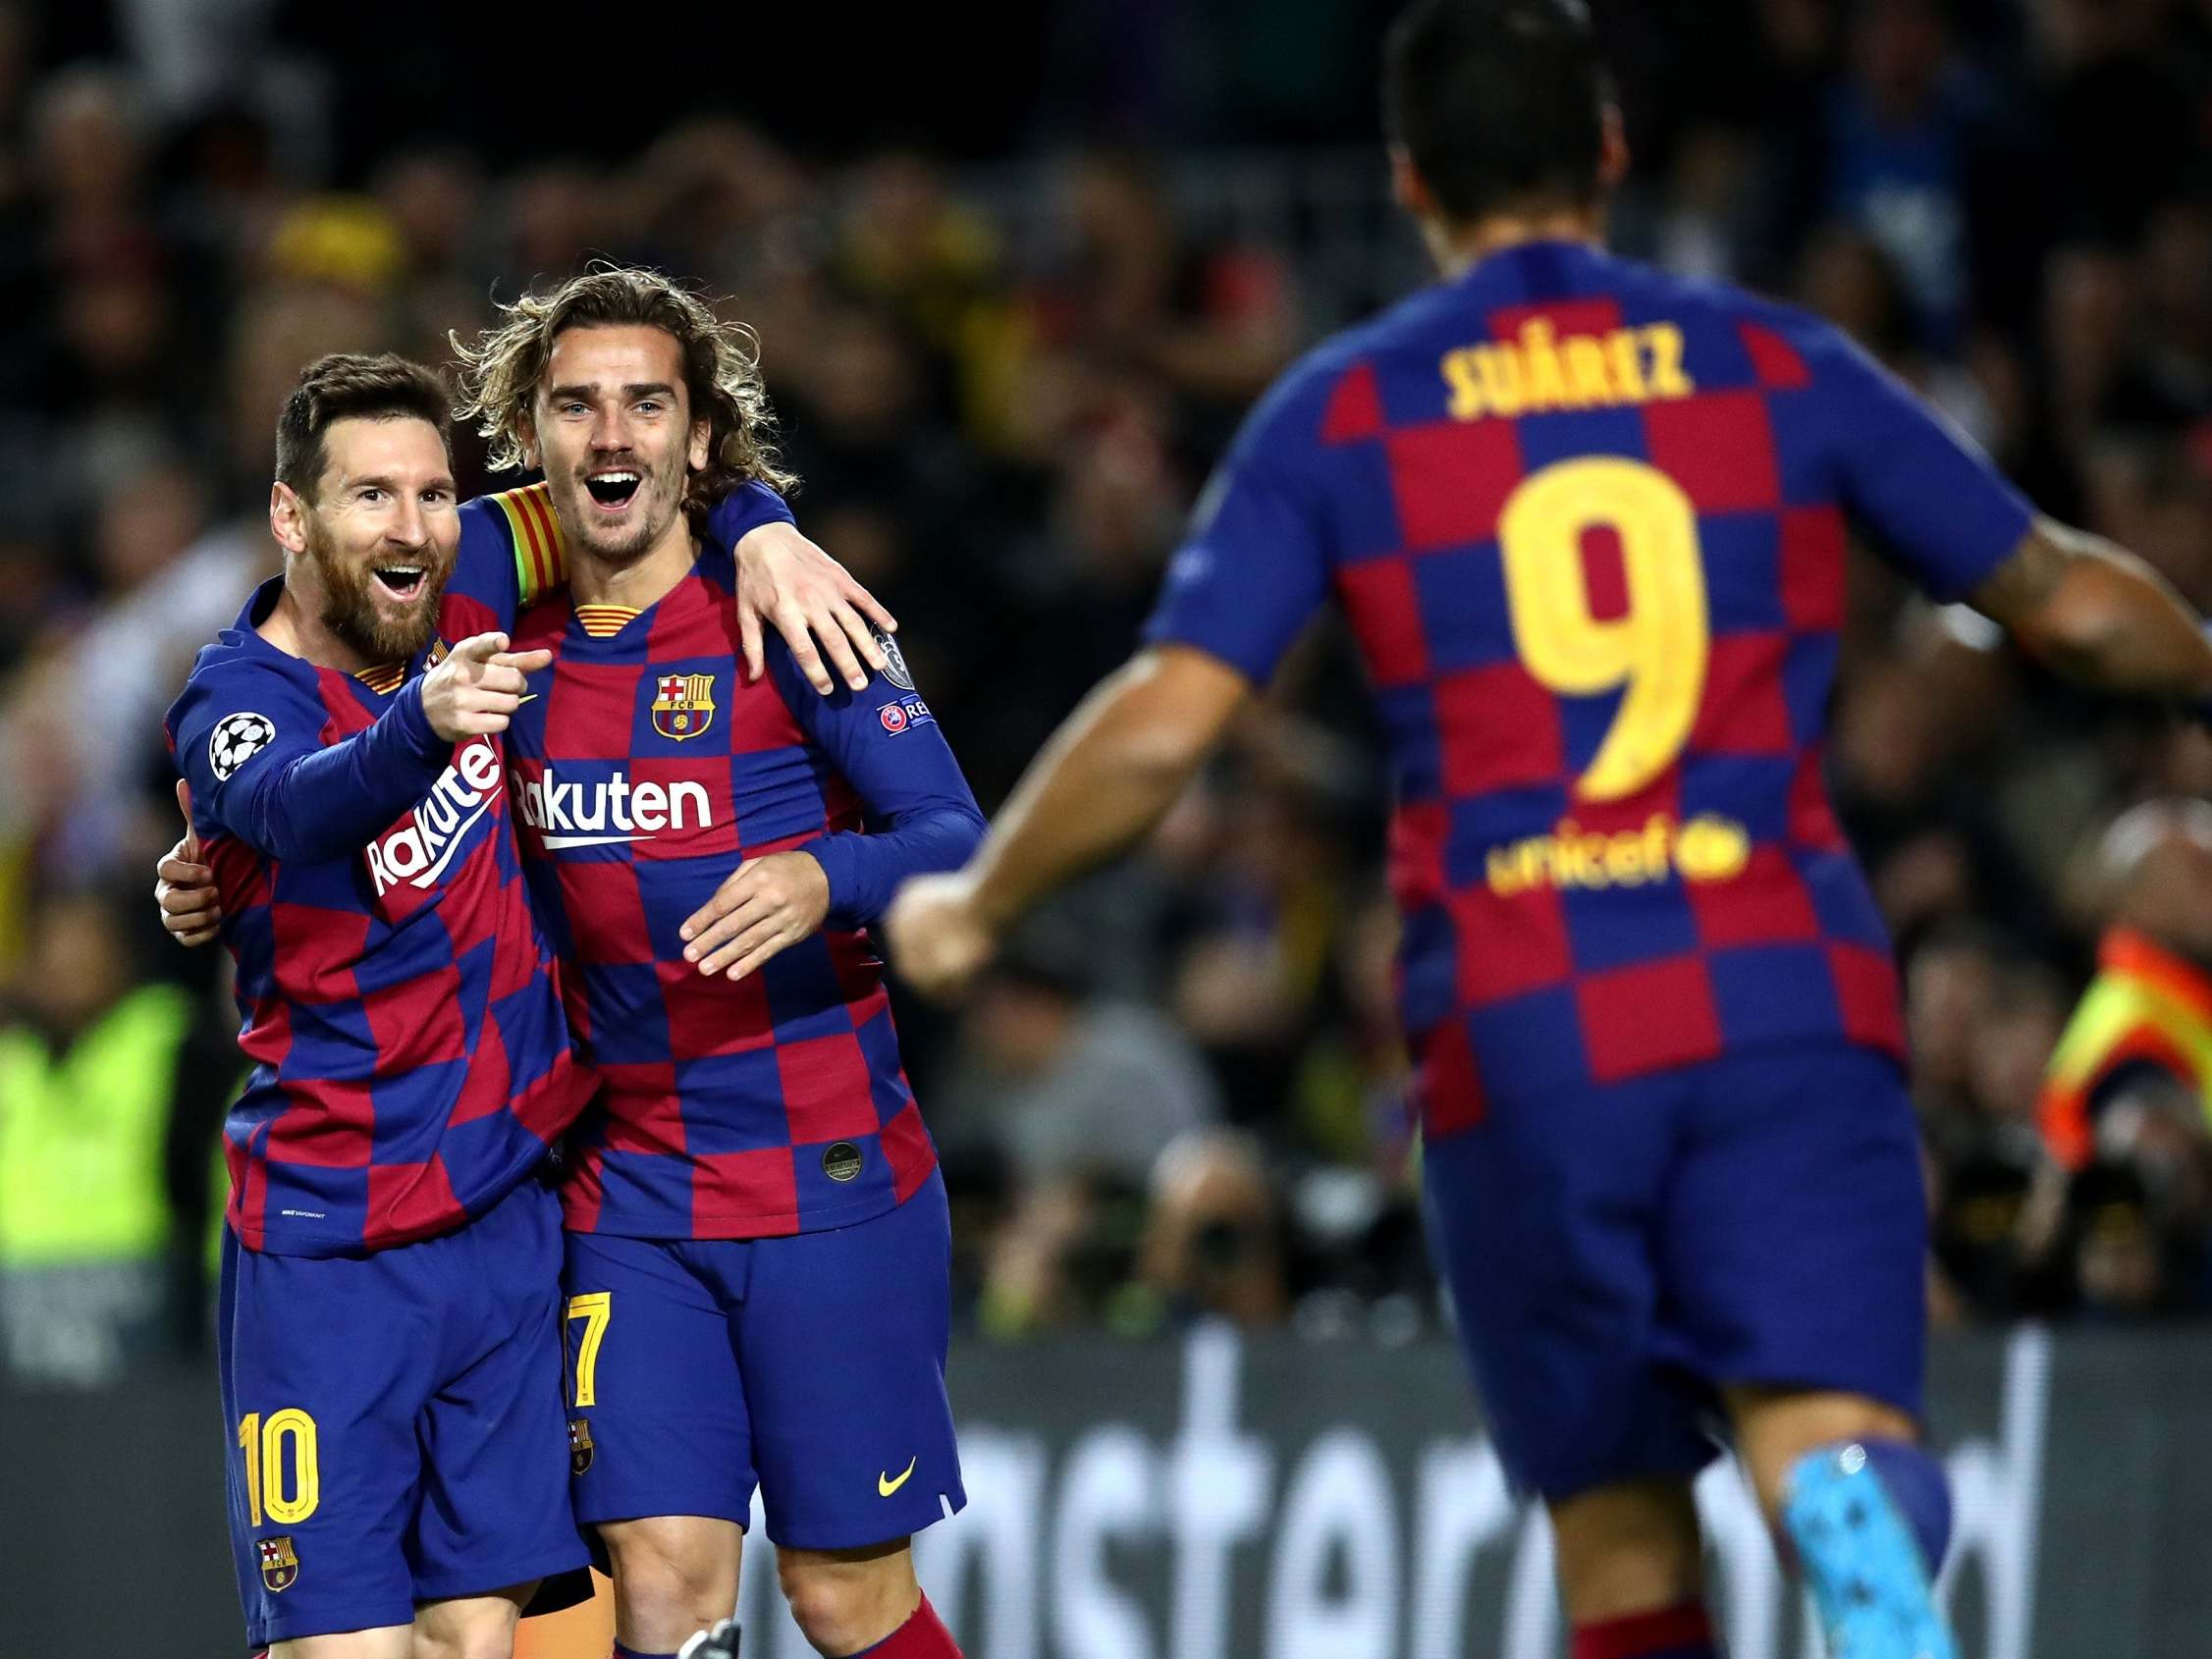 Atletico Madrid vs Barcelona live stream: How to watch La Liga fixture online and on TV